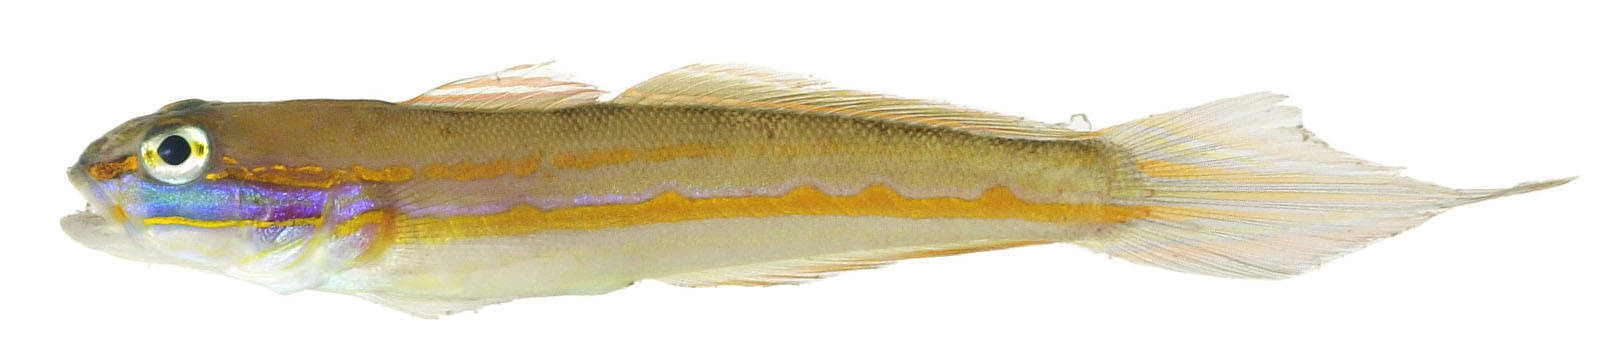 Image of Sleeper Gobies